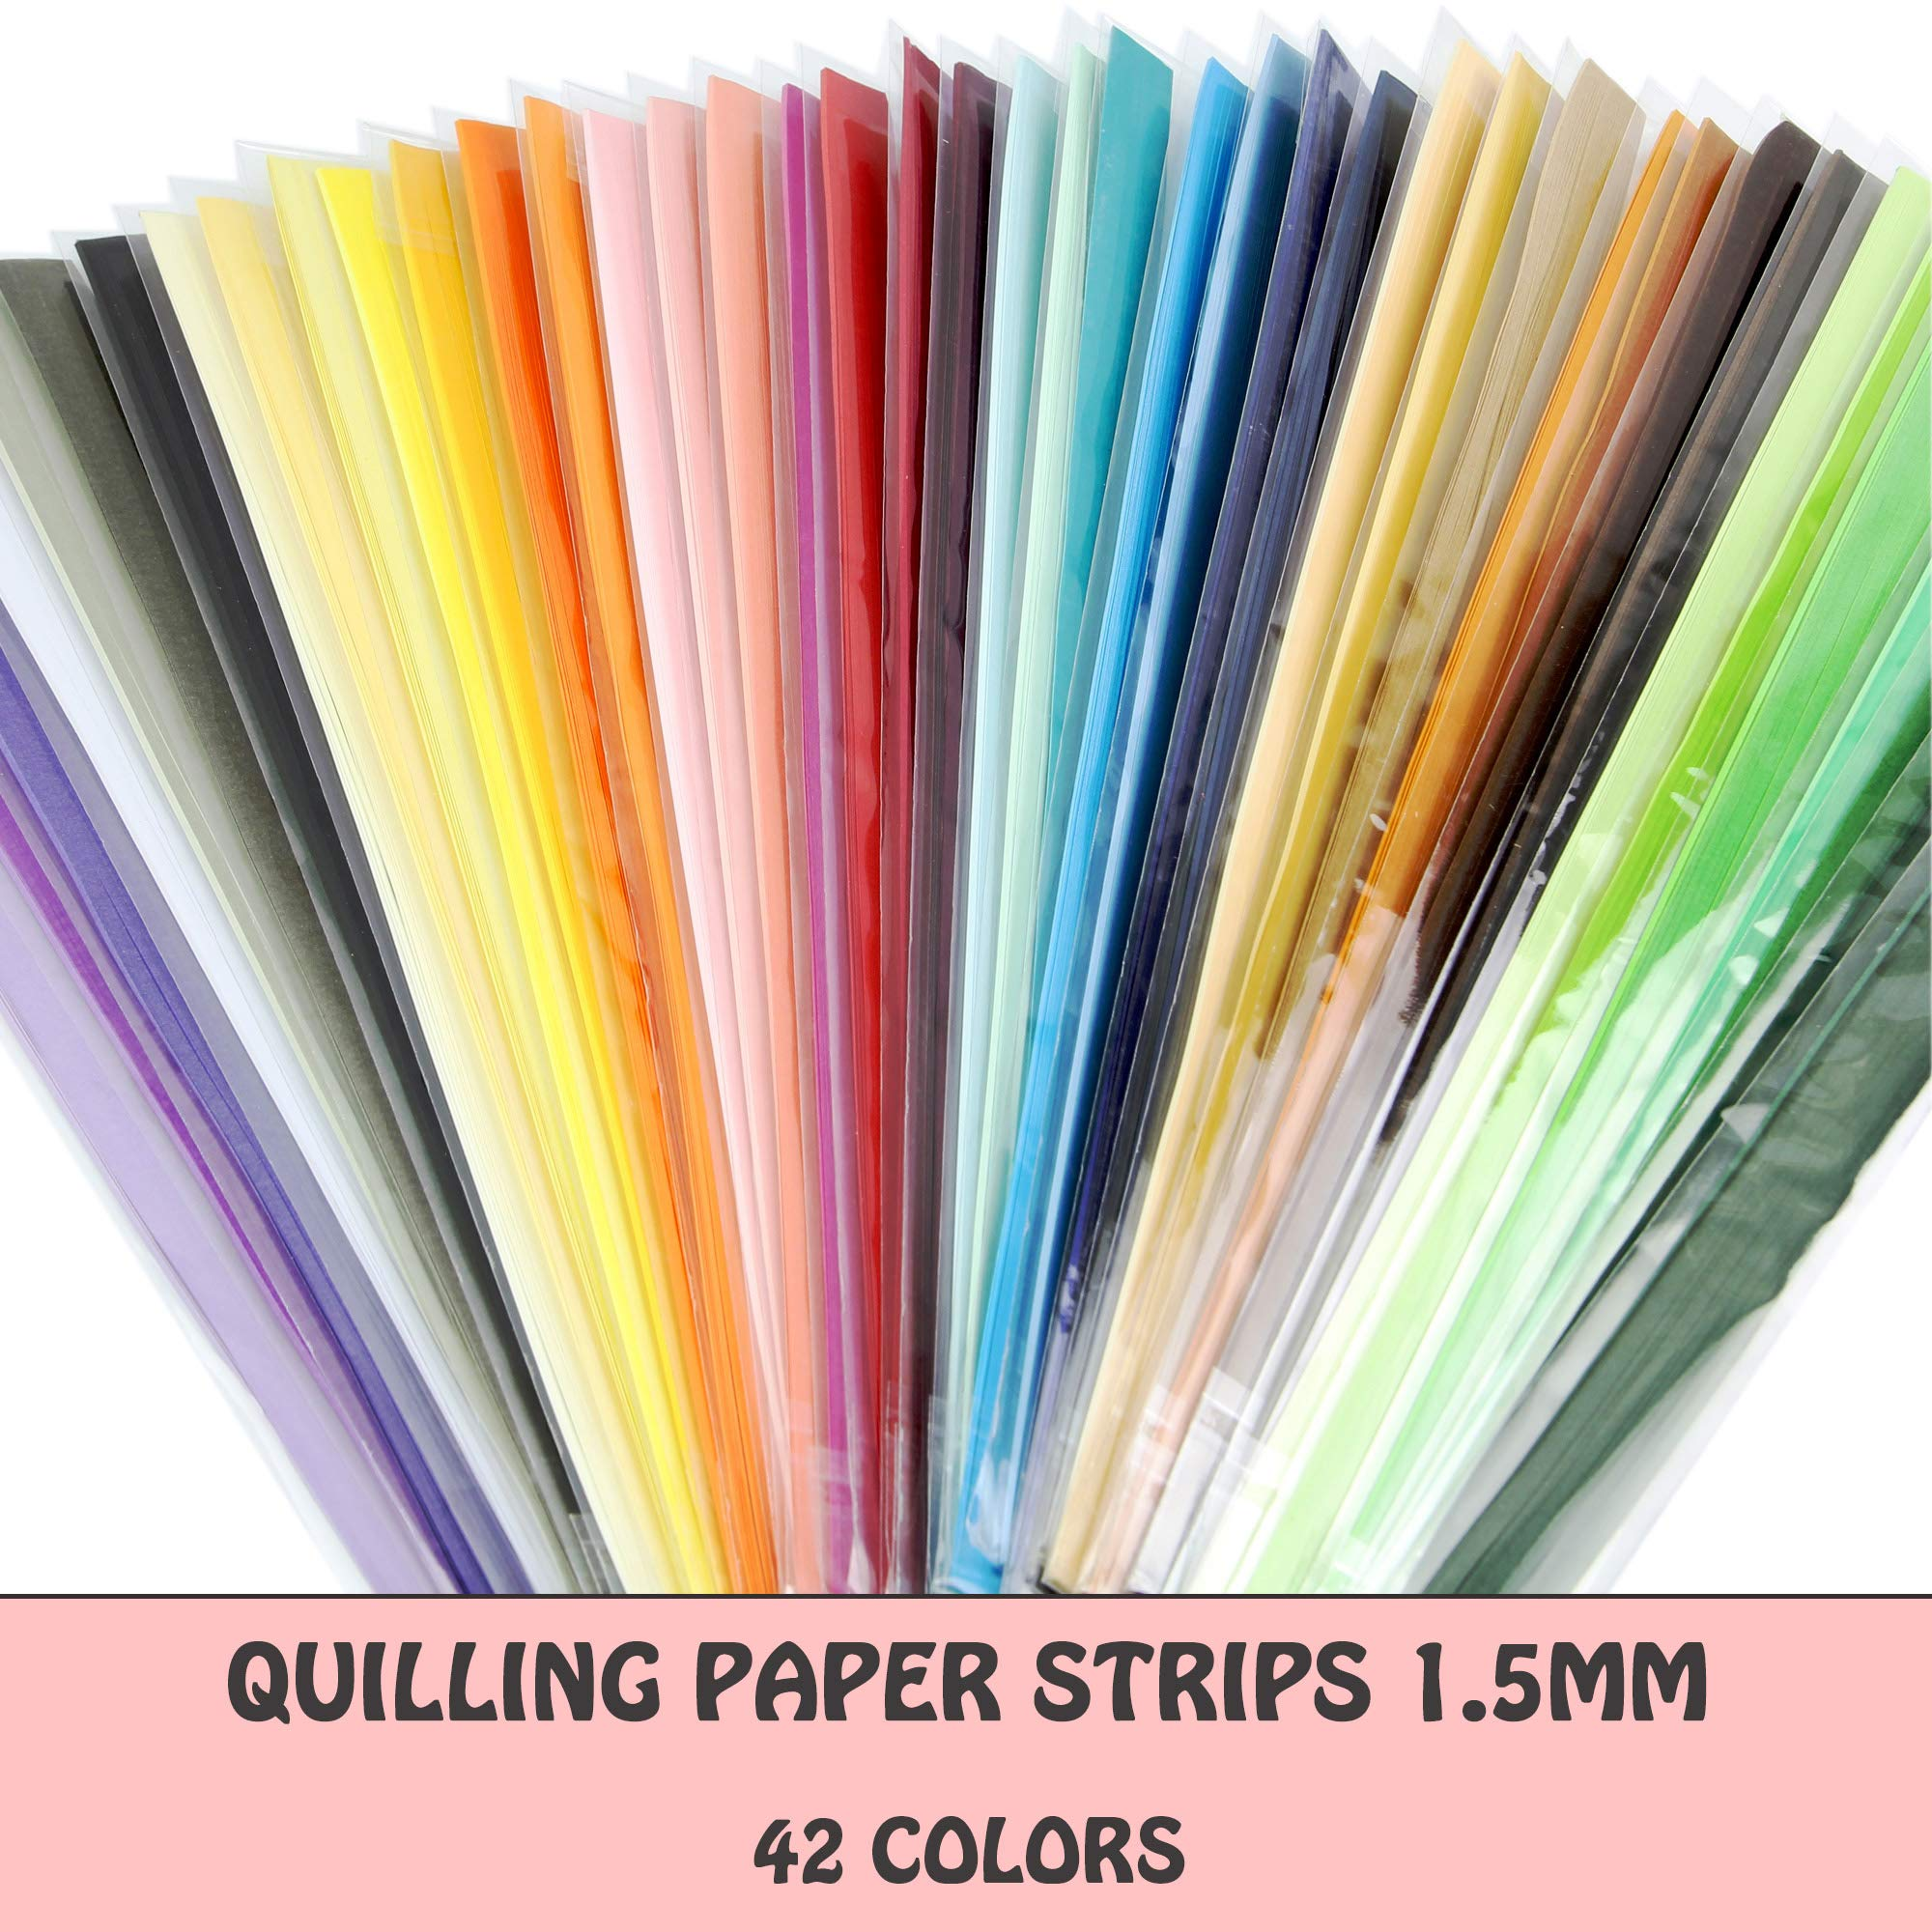 IMISNO Quilling Paper Strips Set - Width 1.5mm,42 Colors,5040 Strips Total by IMISNO